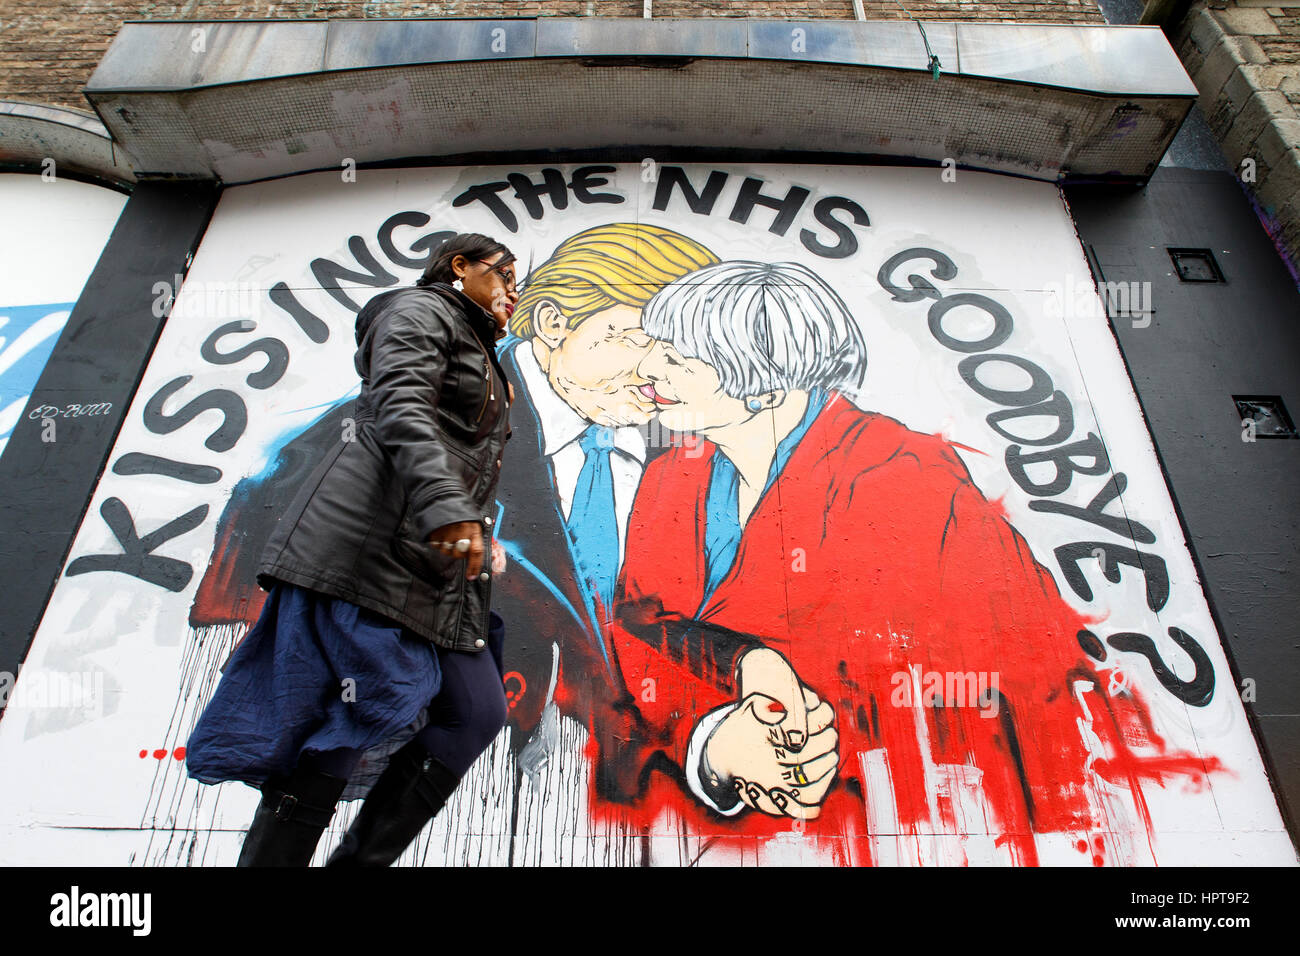 Bristol, UK. 24th Feb, 2017. A woman is pictured walking past a new piece of street art warning about the death - Stock Image